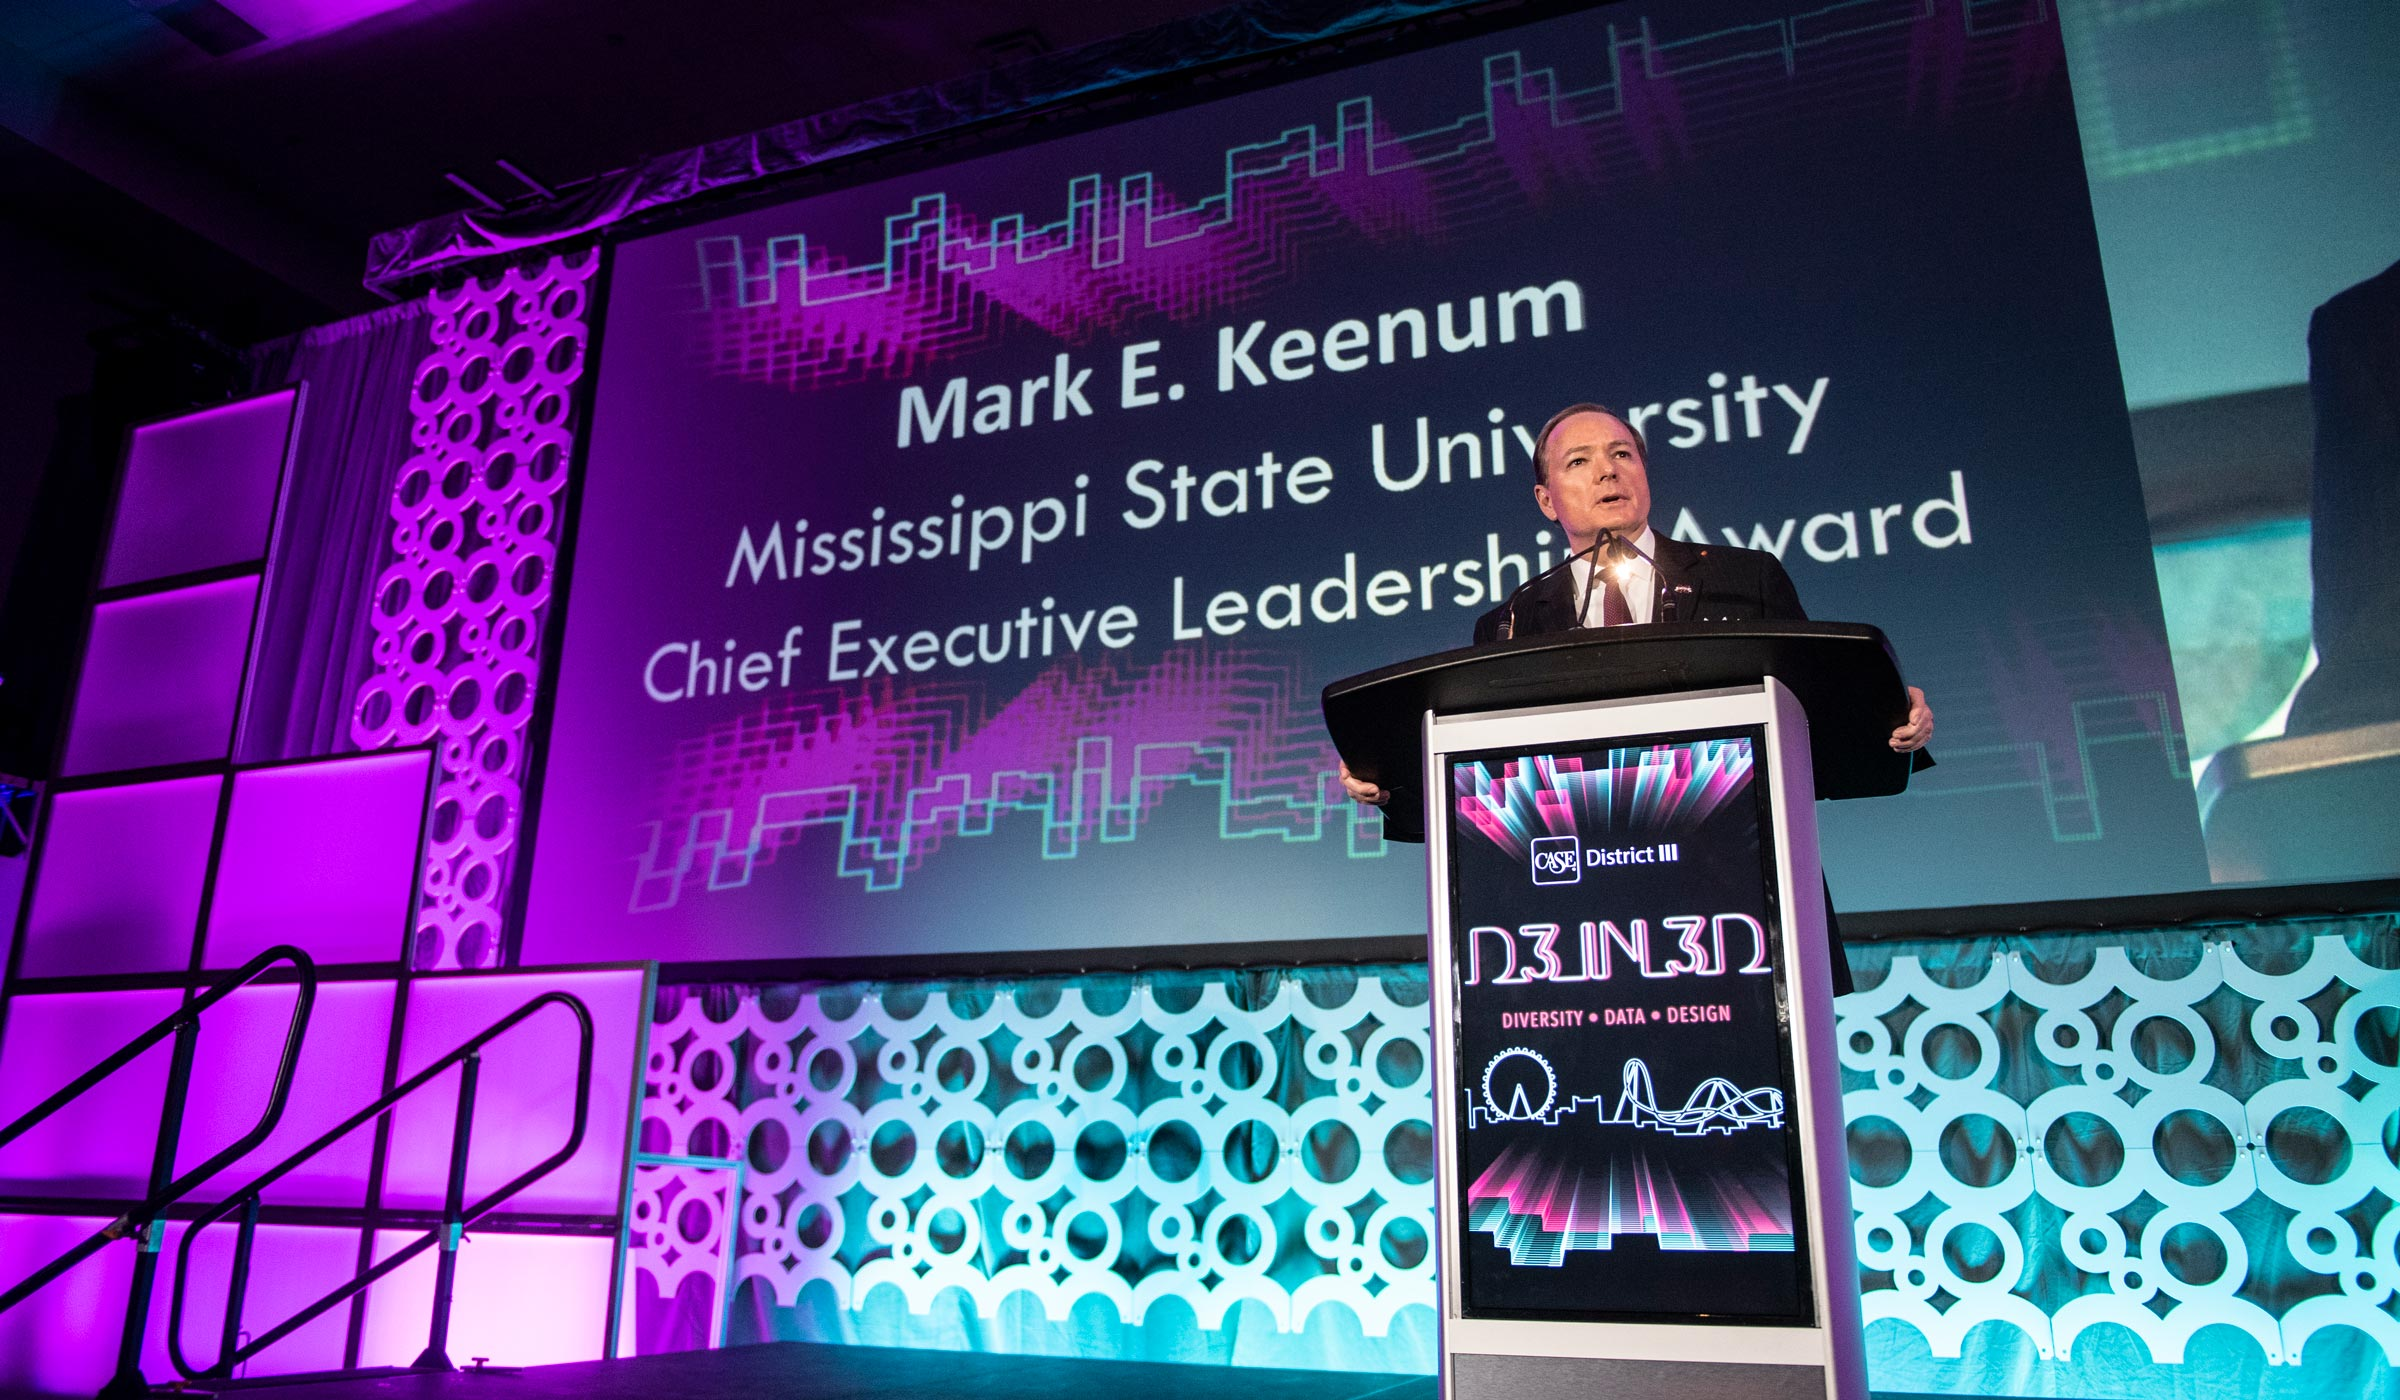 Dr. Keenum gives a speech after being announced the recipient of the Chief Executive Leadership Award in Orlando, Florida.